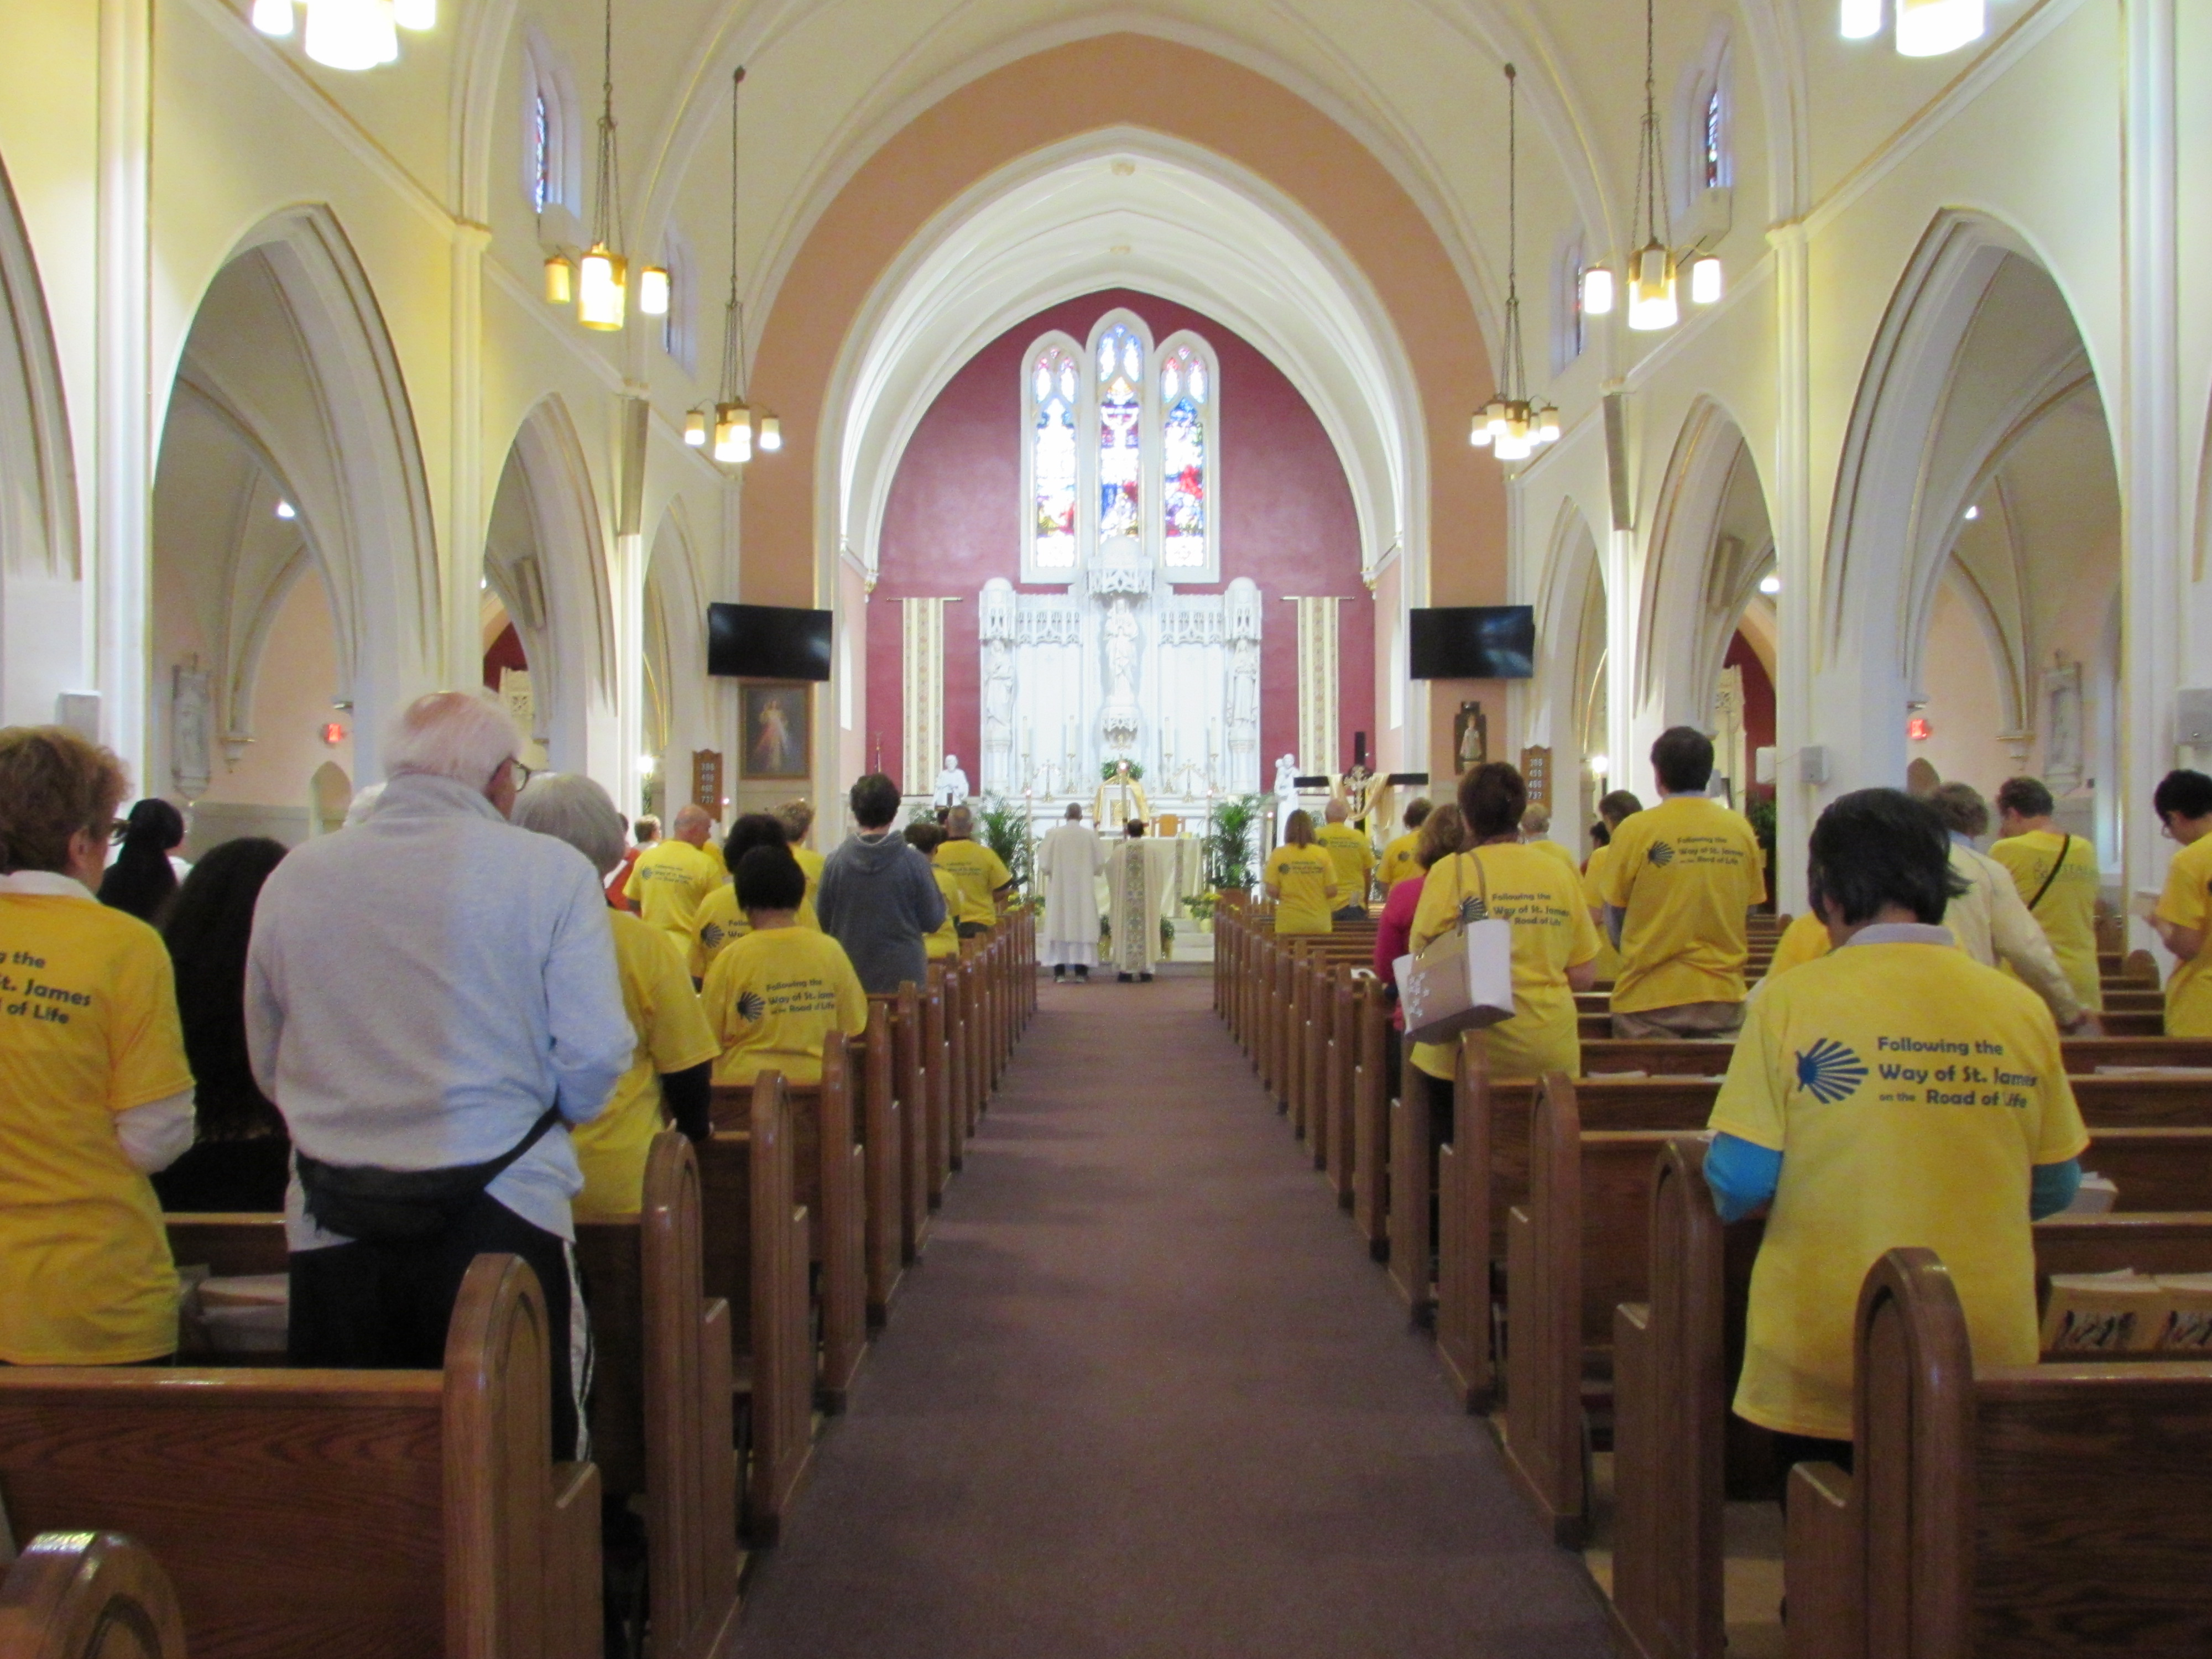 FOLLOWING THE WAY OF ST  JAMES – Vitality